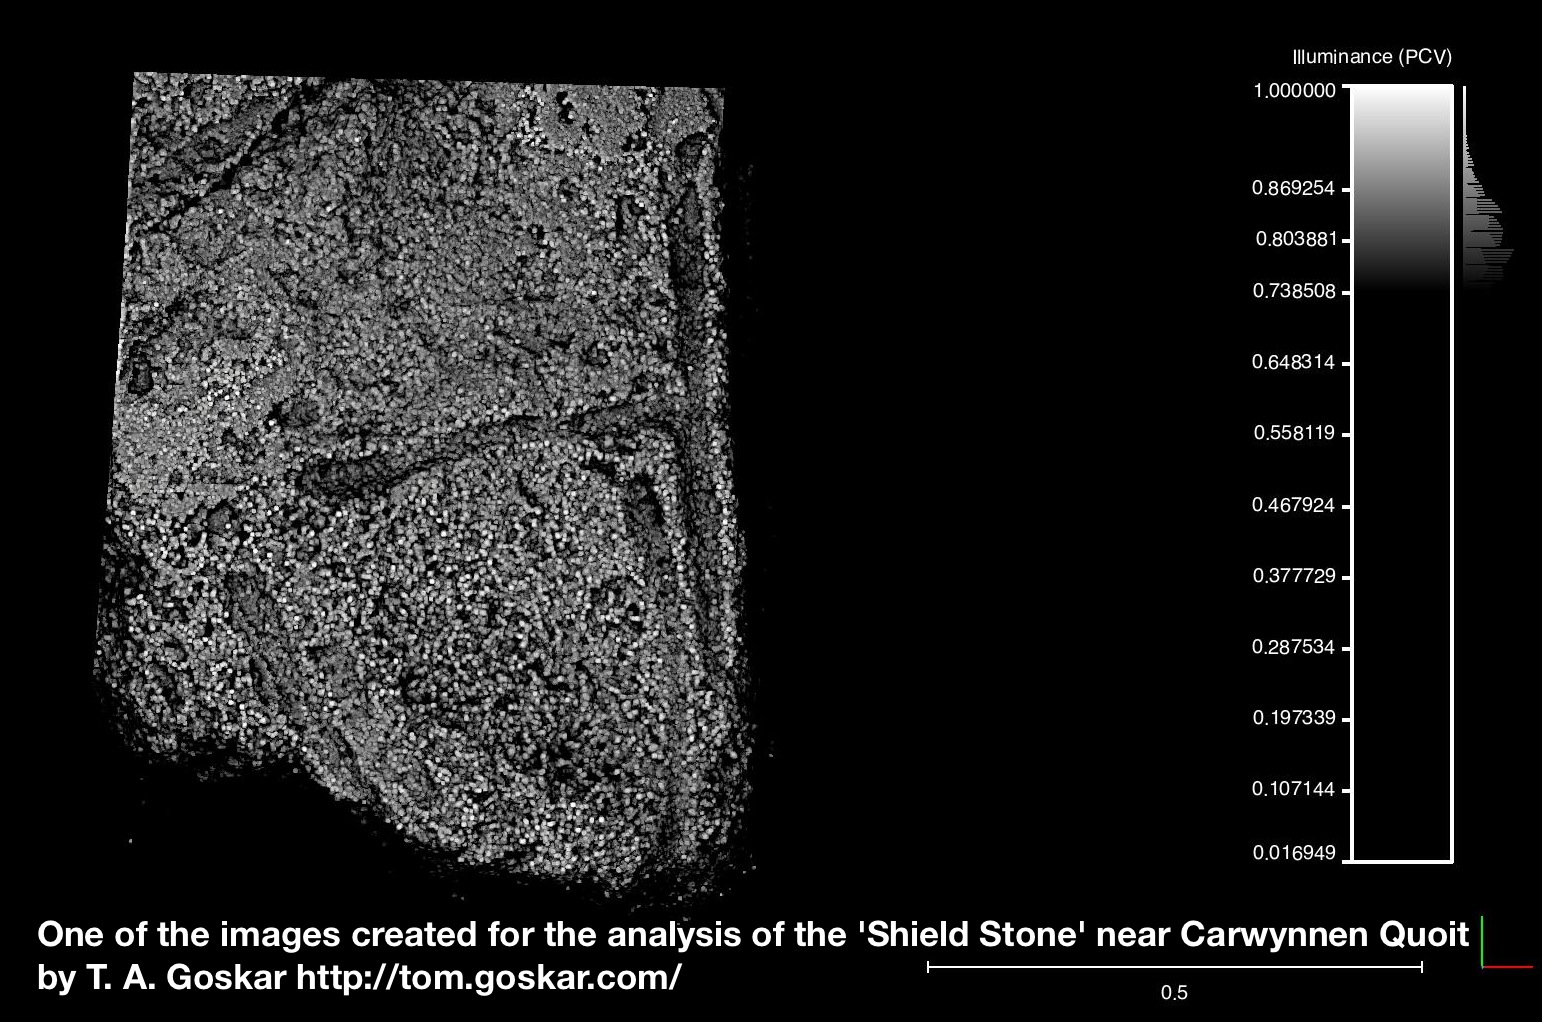 One of the images created for the analysis of the 'Coffin Stone' close to Carwynnen Quoit